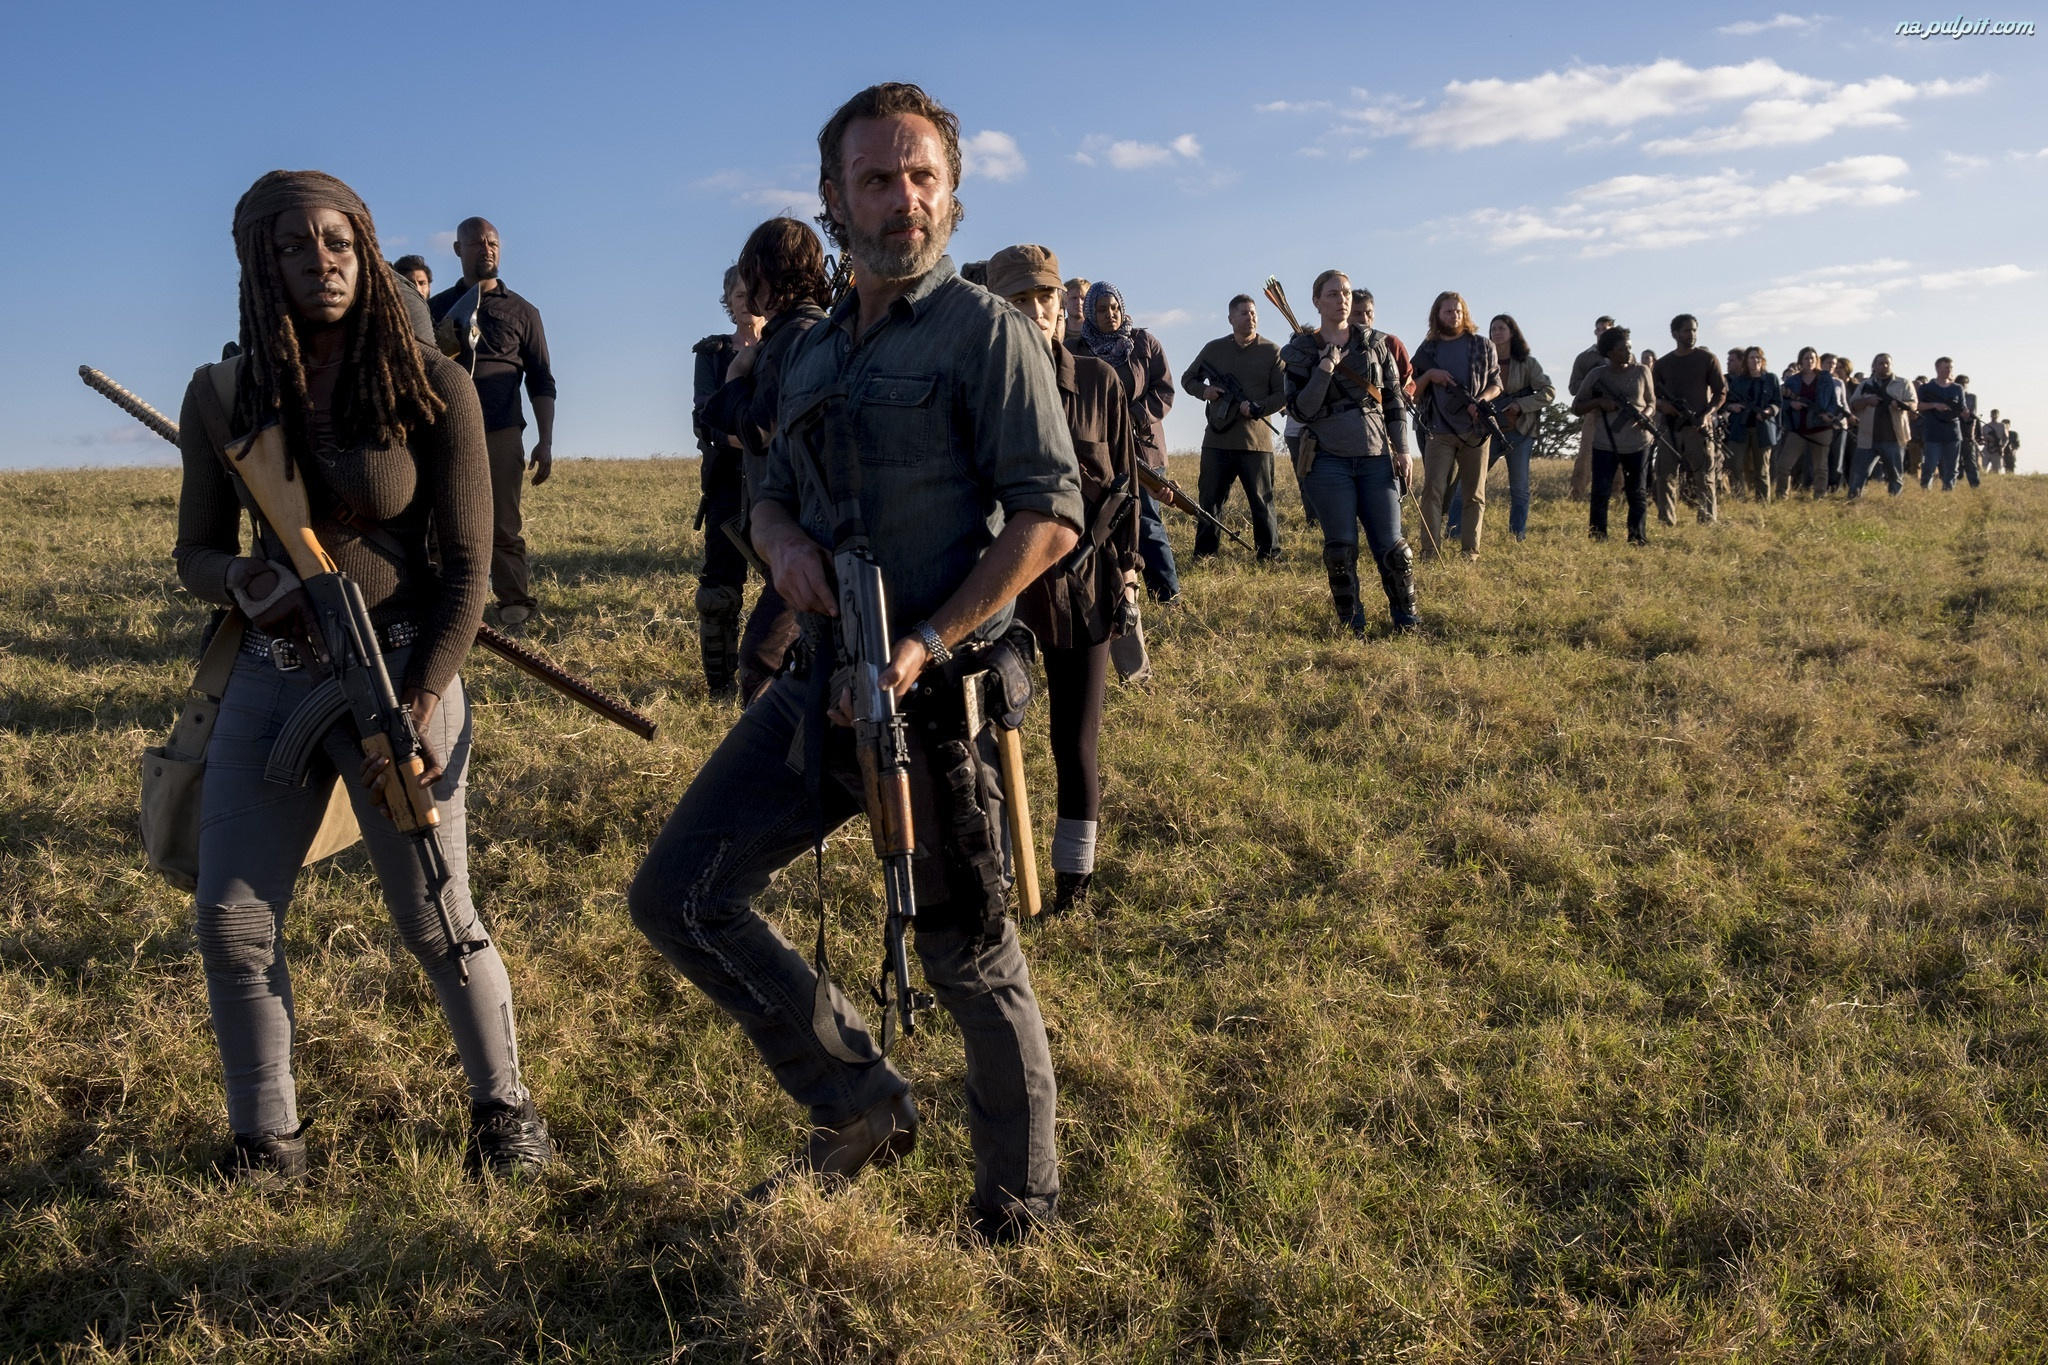 Michonne - Danai Gurira, Żywe trupy, The Walking Dead, Serial, Rick Grimes - Andrew Lincoln